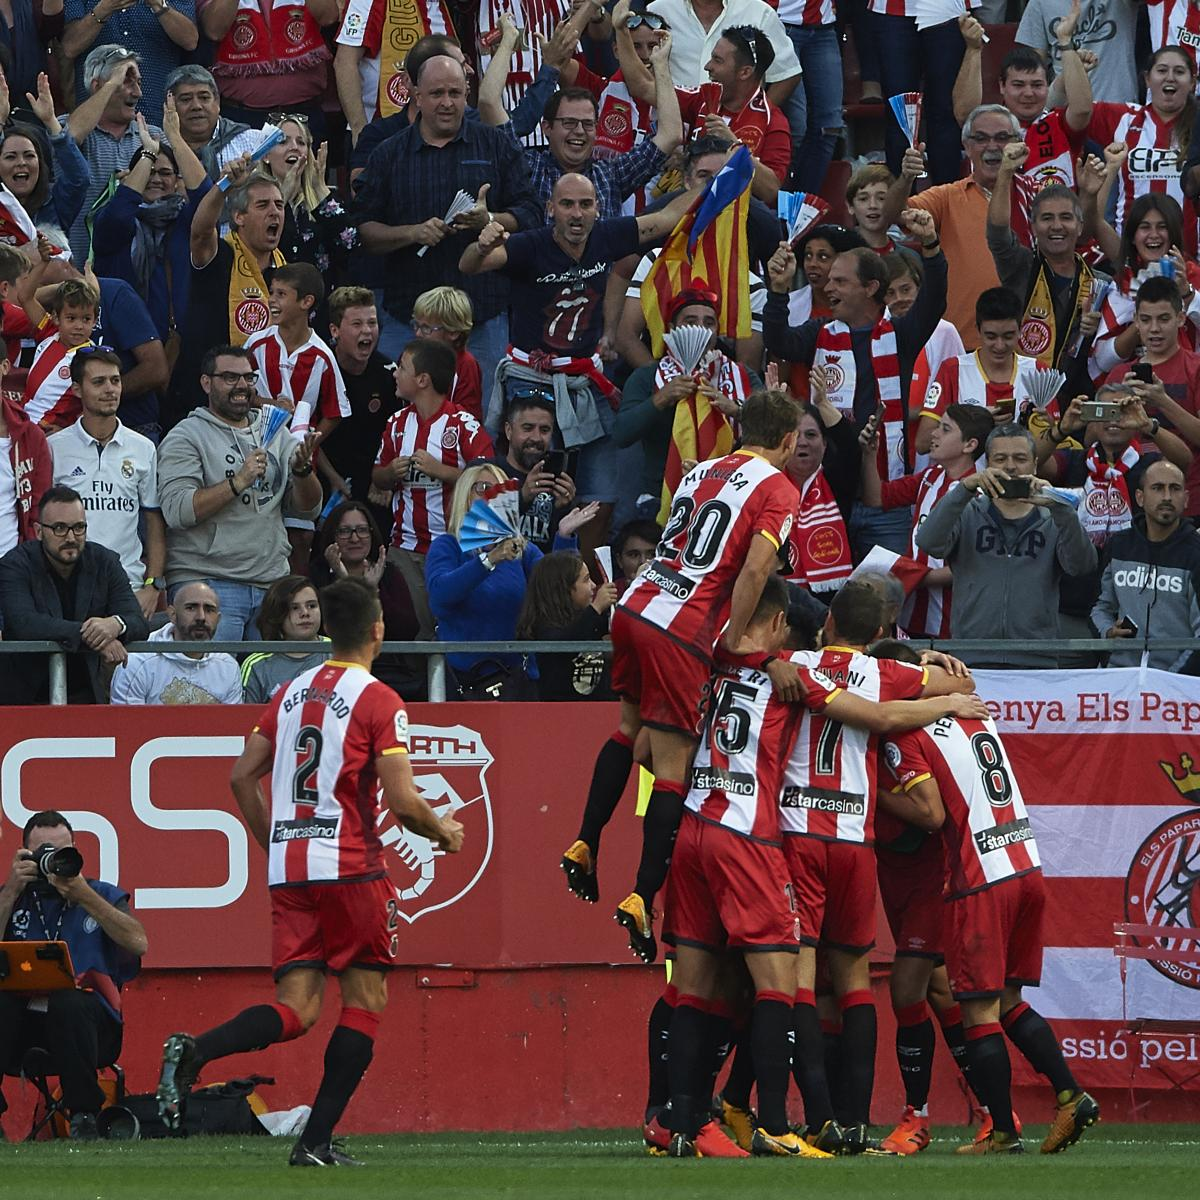 La liga table 2017 week 10 standings and final scores - La liga latest results and table ...